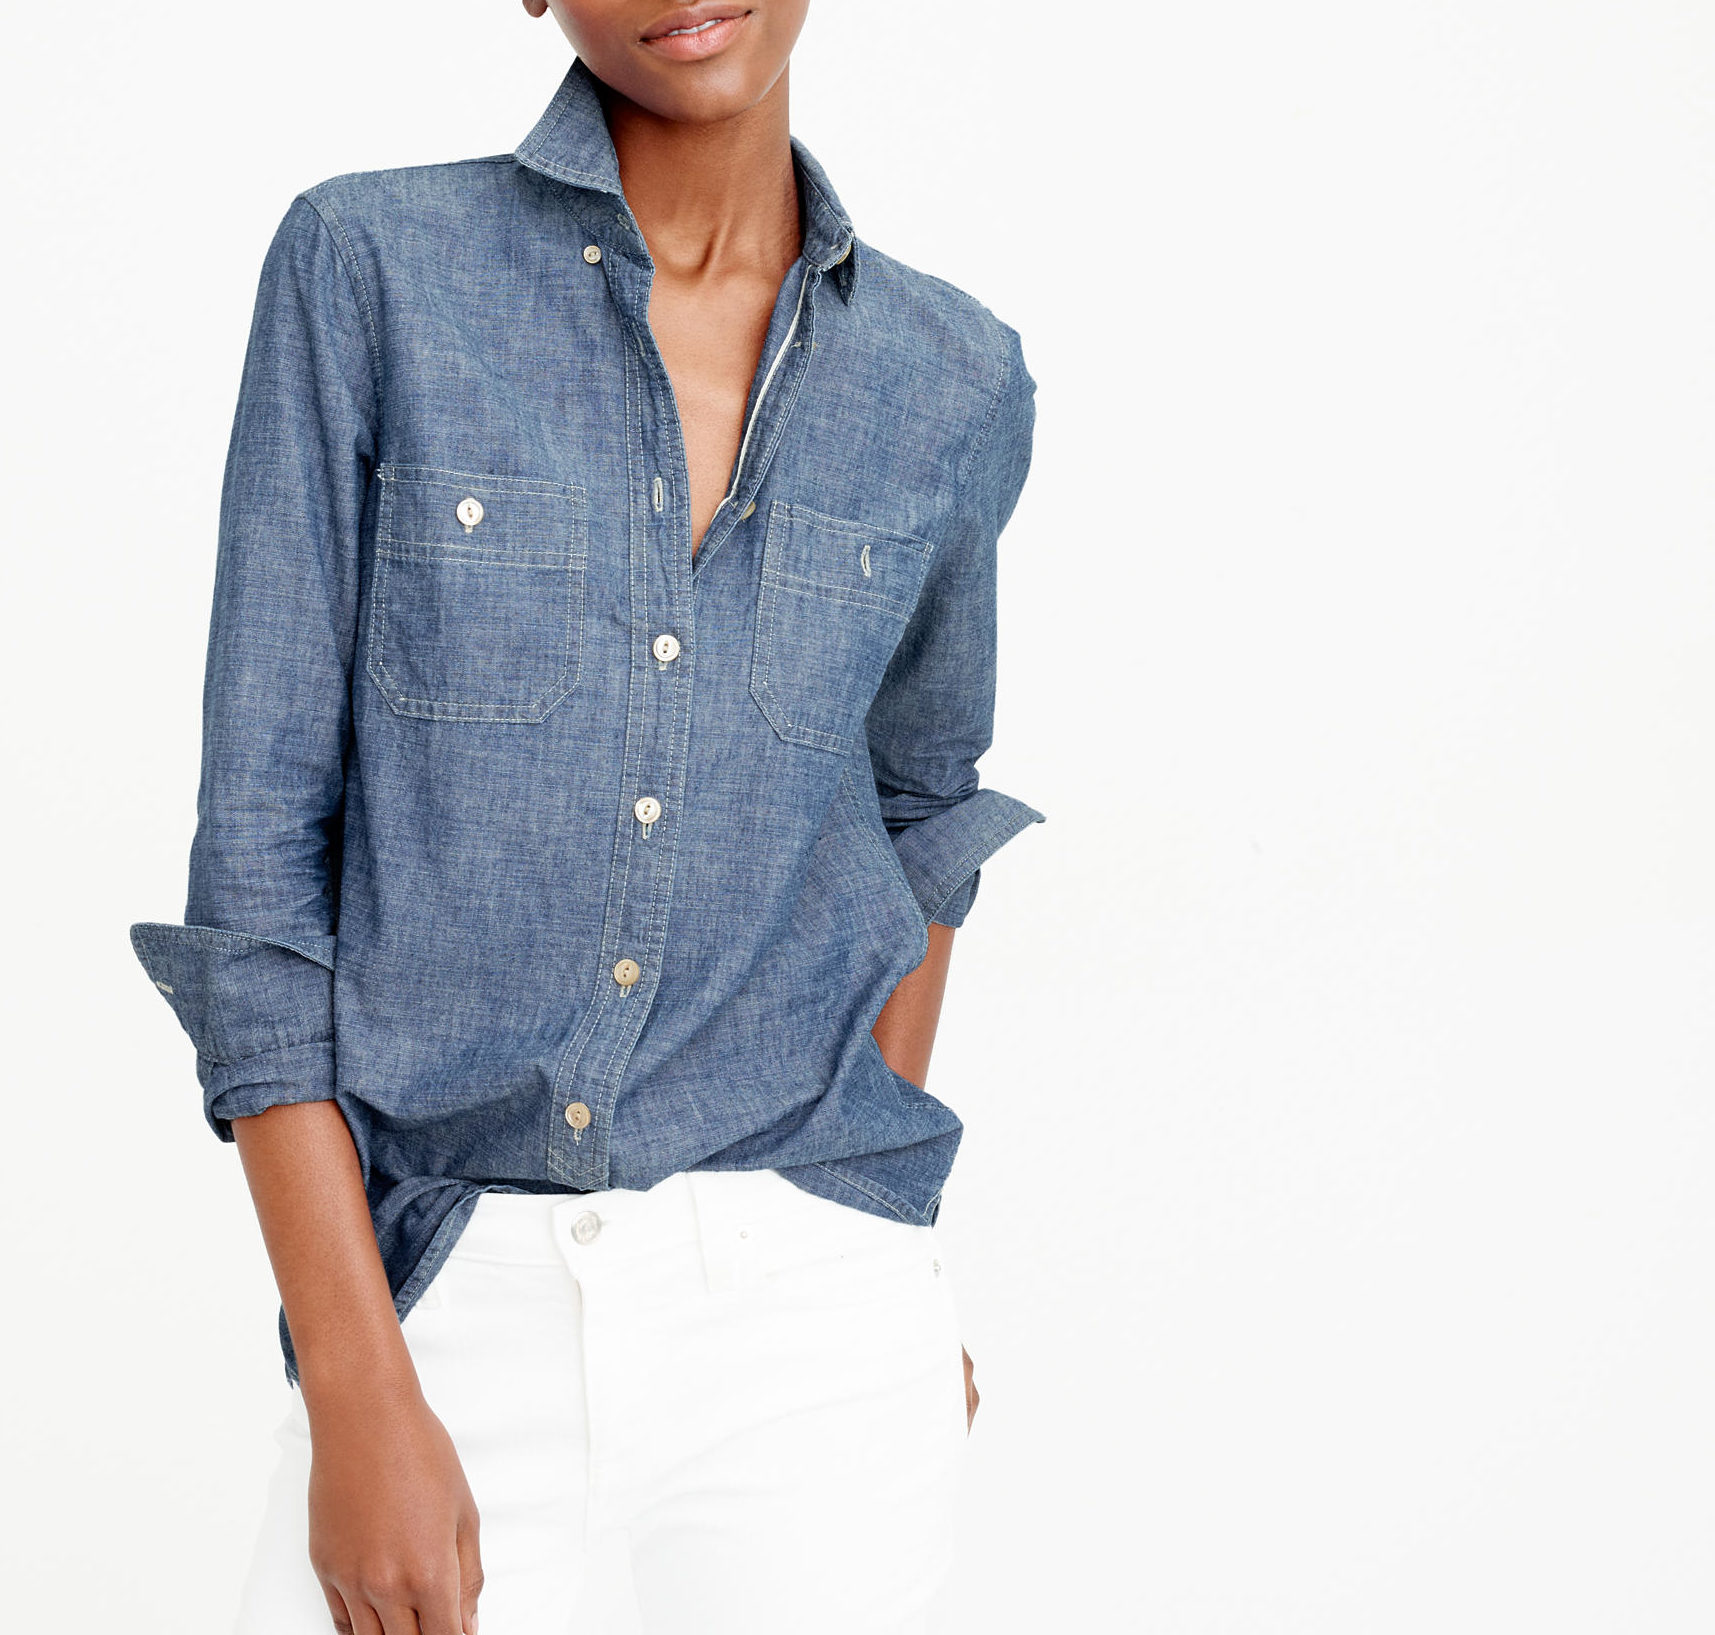 J Crew denim shirt—Wardrobe classics: The denim shirt